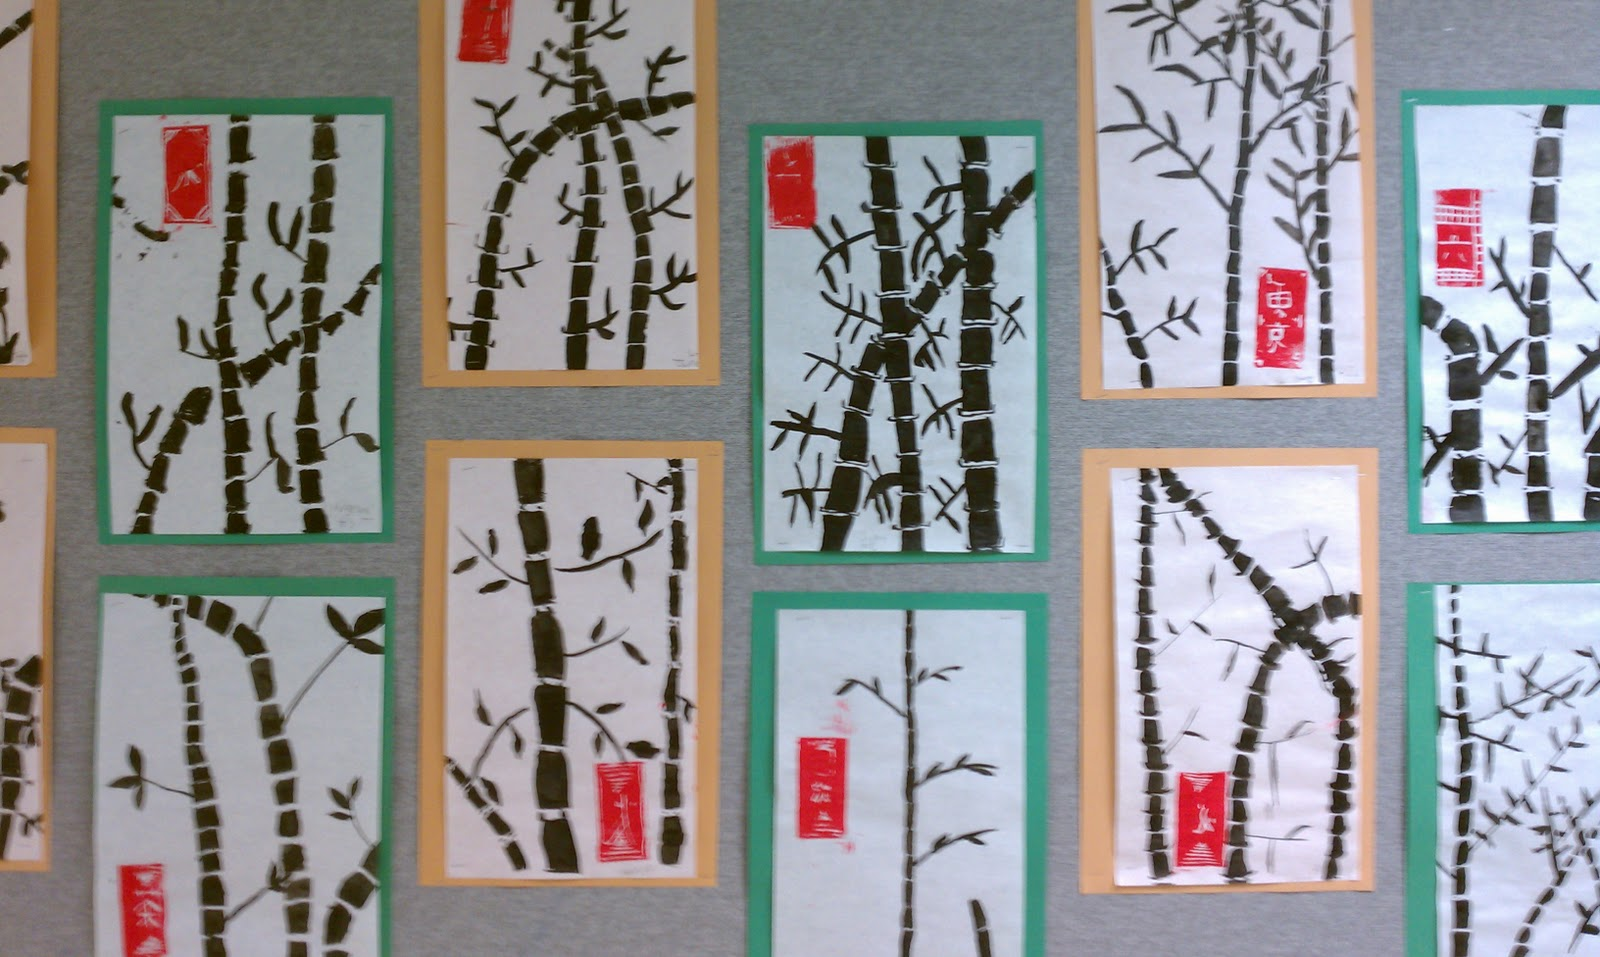 Art rocks grade 3 bamboo paintings for New ideas pictures